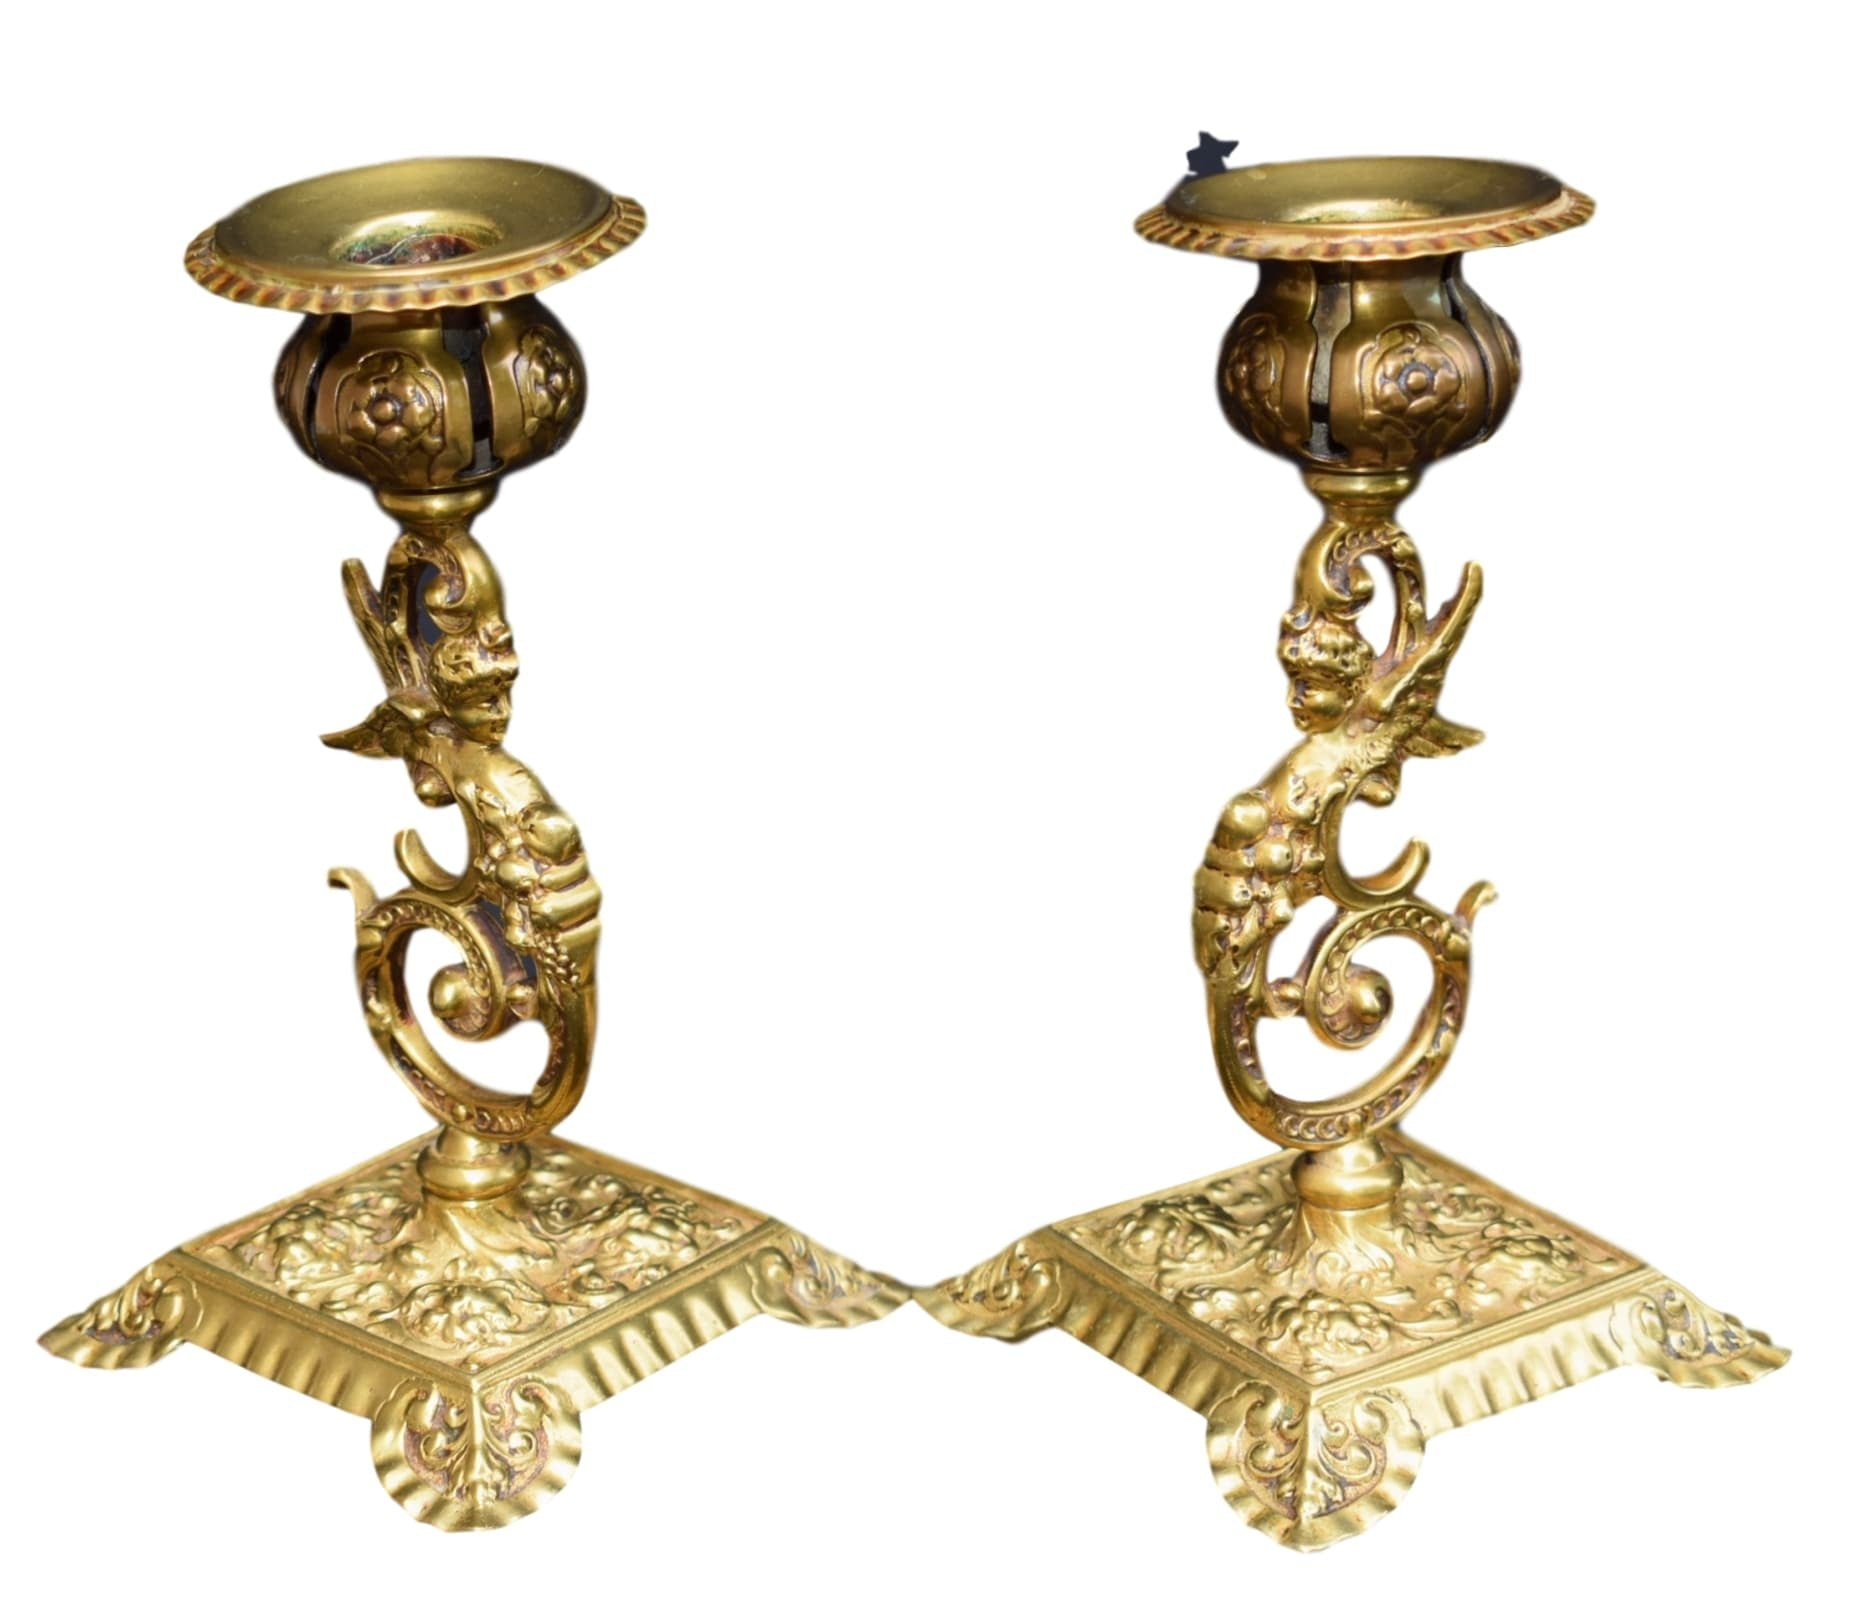 Pair of French Antique Ormolu Bronze Neo Classical Winged Woman  Candlesticks - Charmantiques